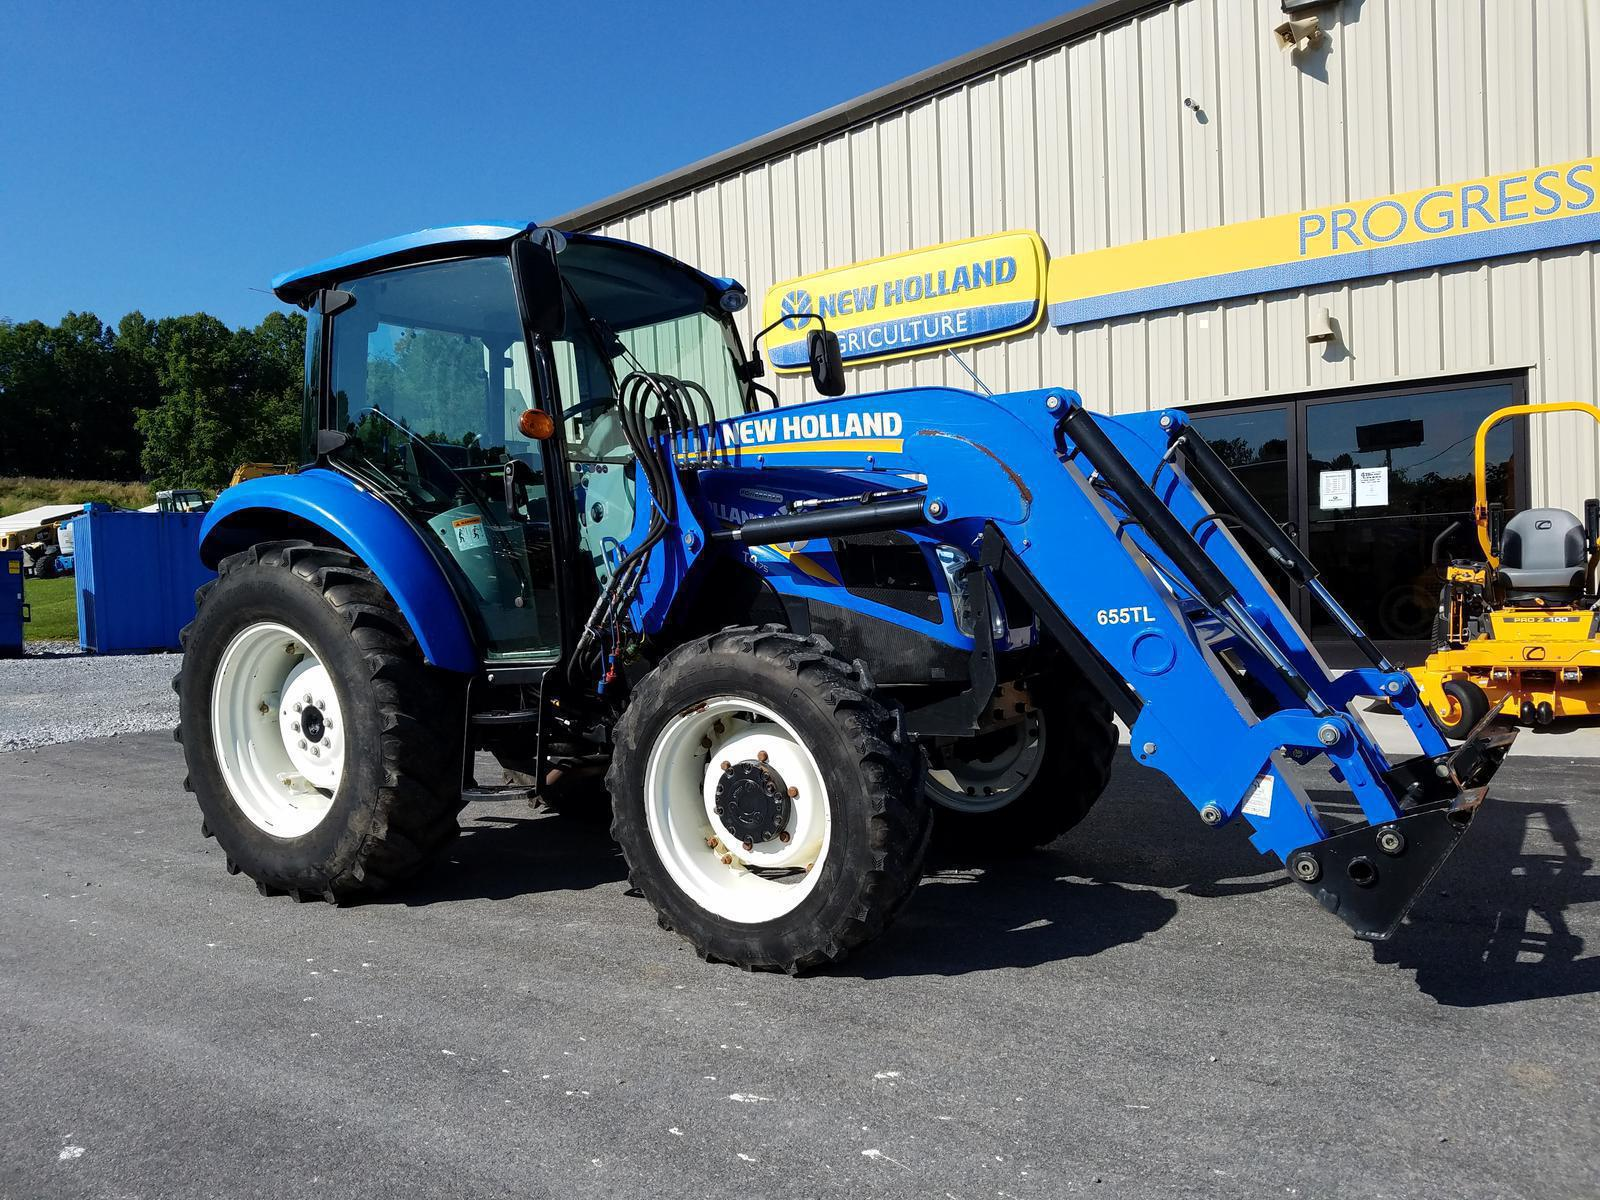 2014 New Holland Agriculture T4 Series PowerStar™ - T4.75 F C New Holland Wiring Schematic on